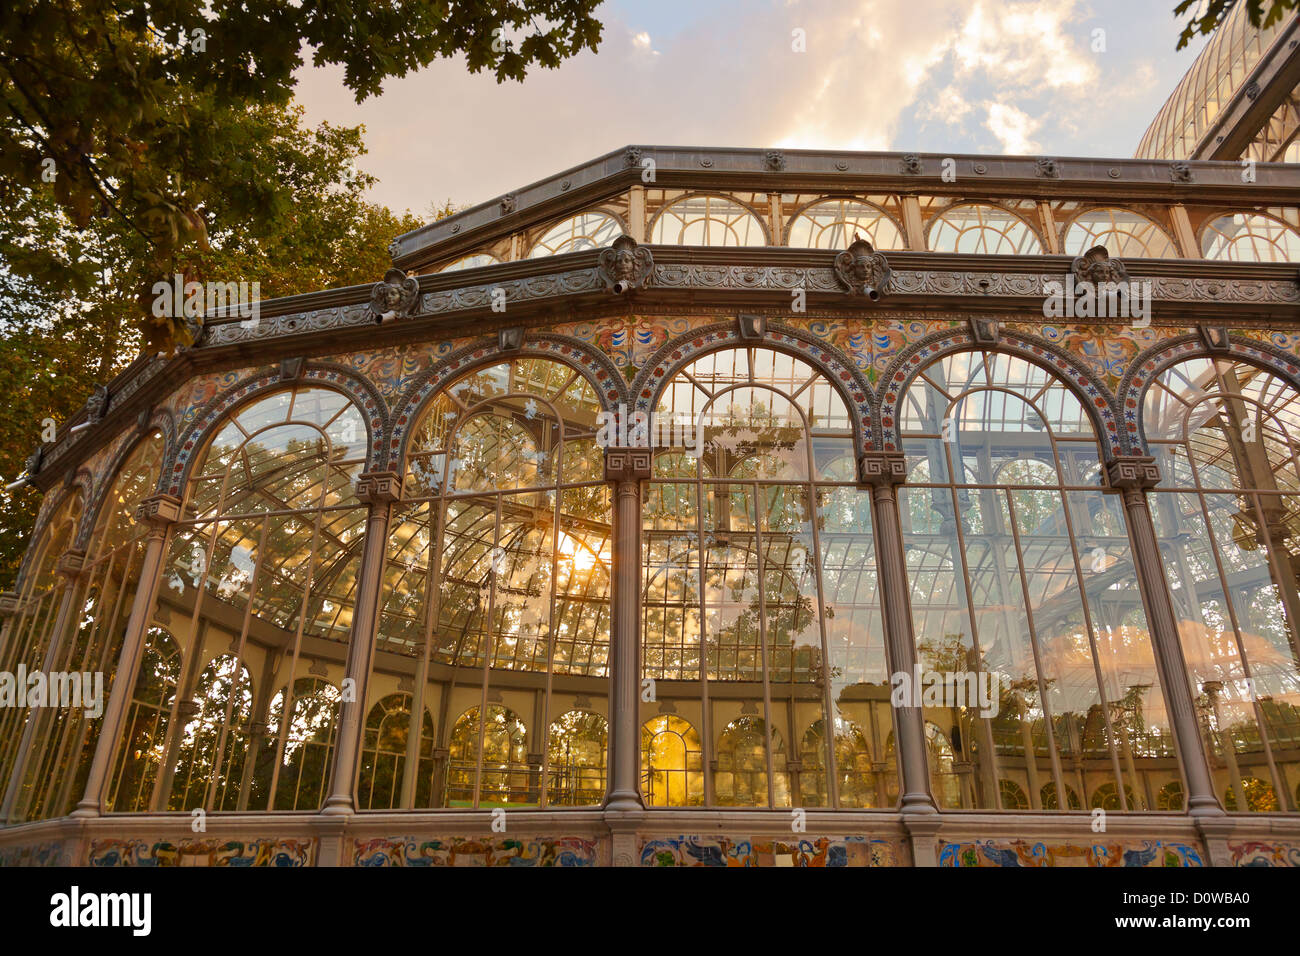 Crystal Palace at Madrid Spain - Stock Image